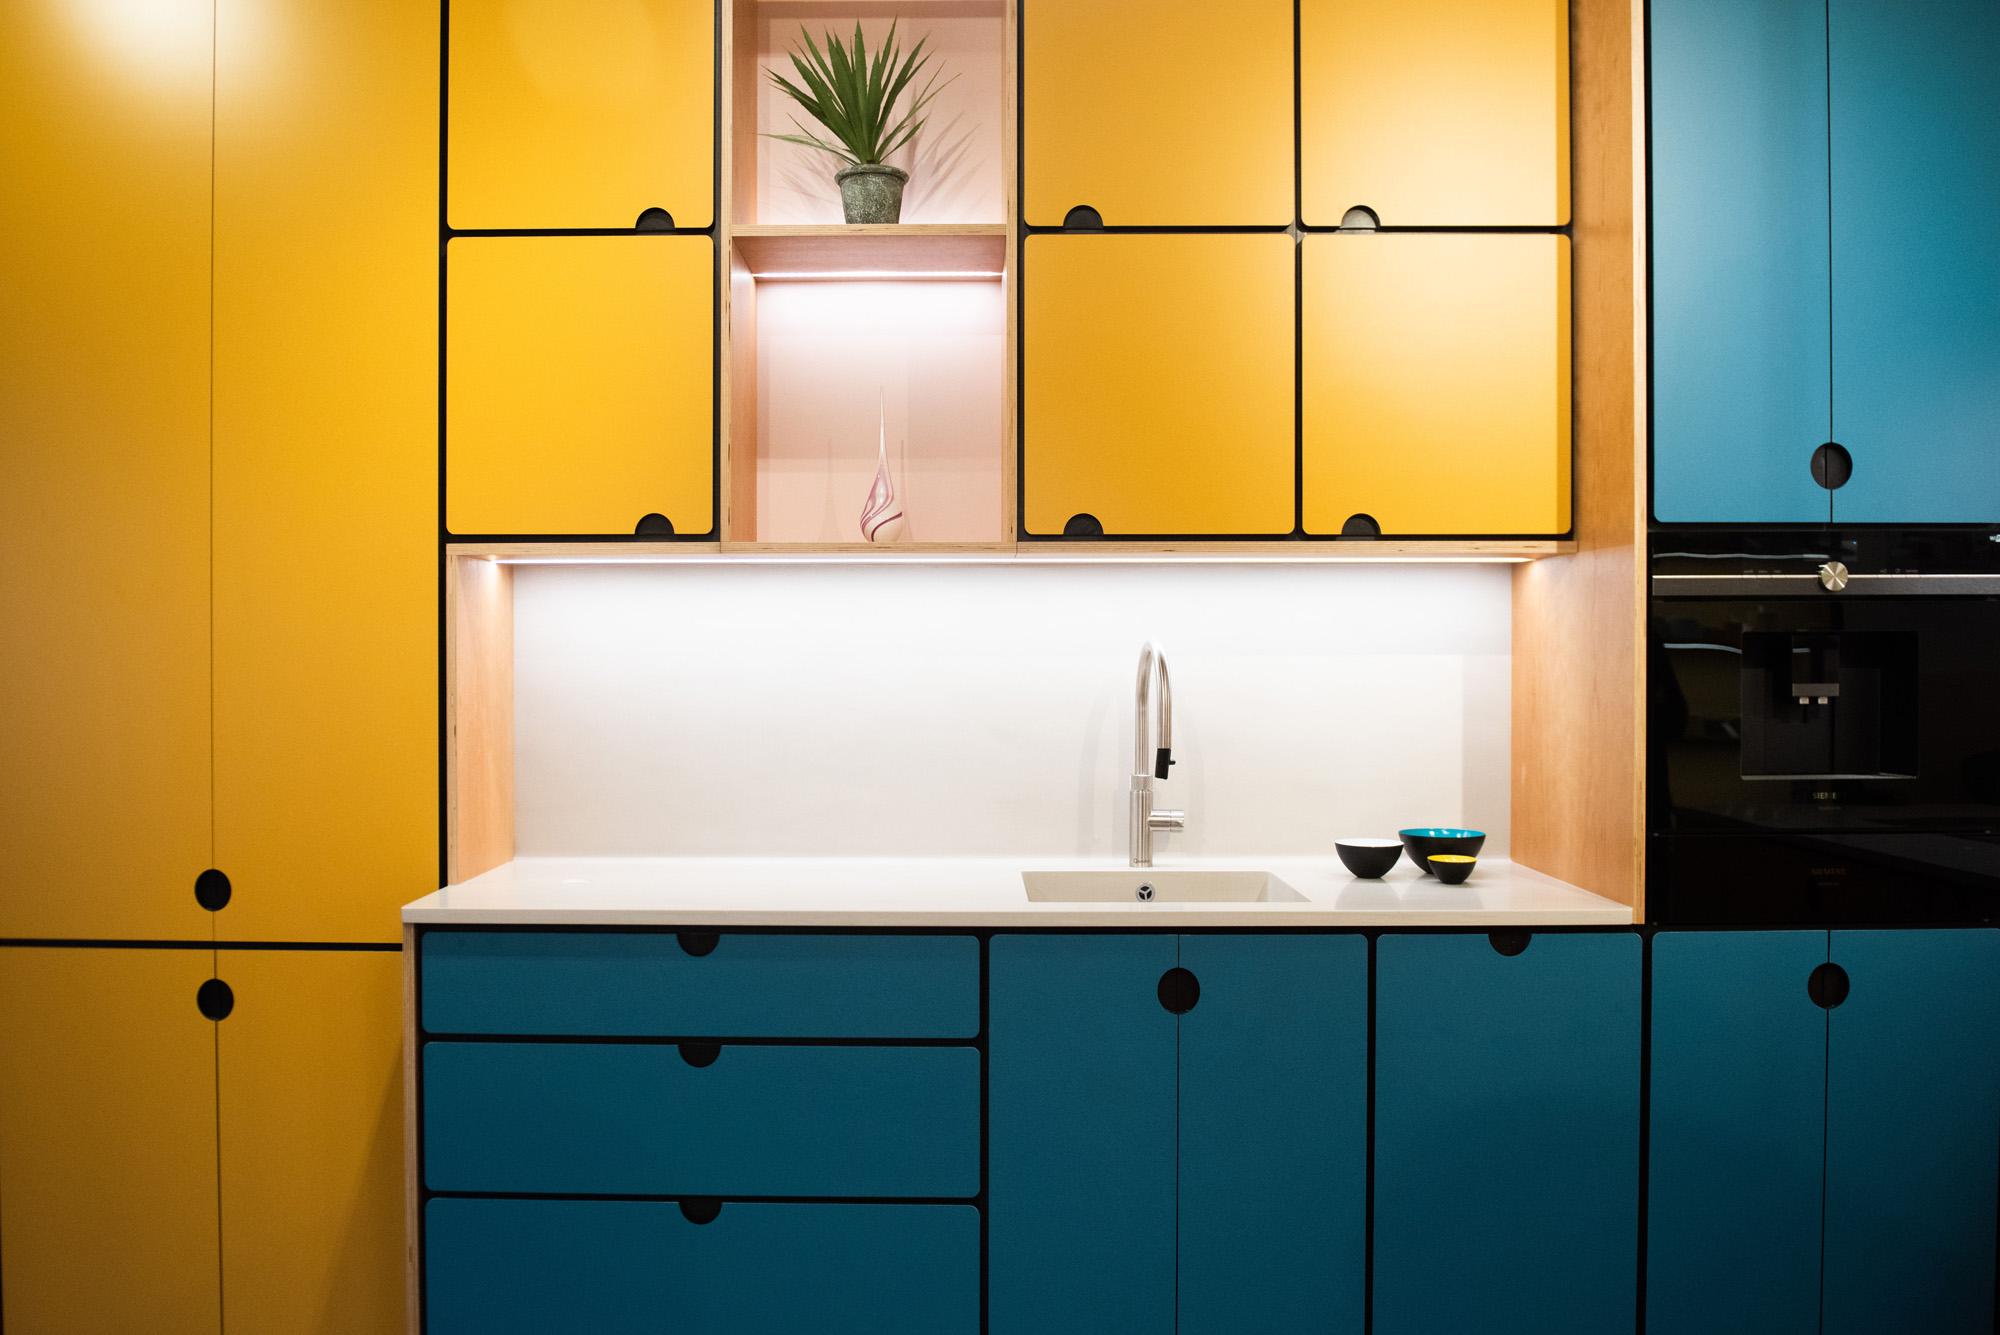 Valchromat Kitchen Yellow and Blue